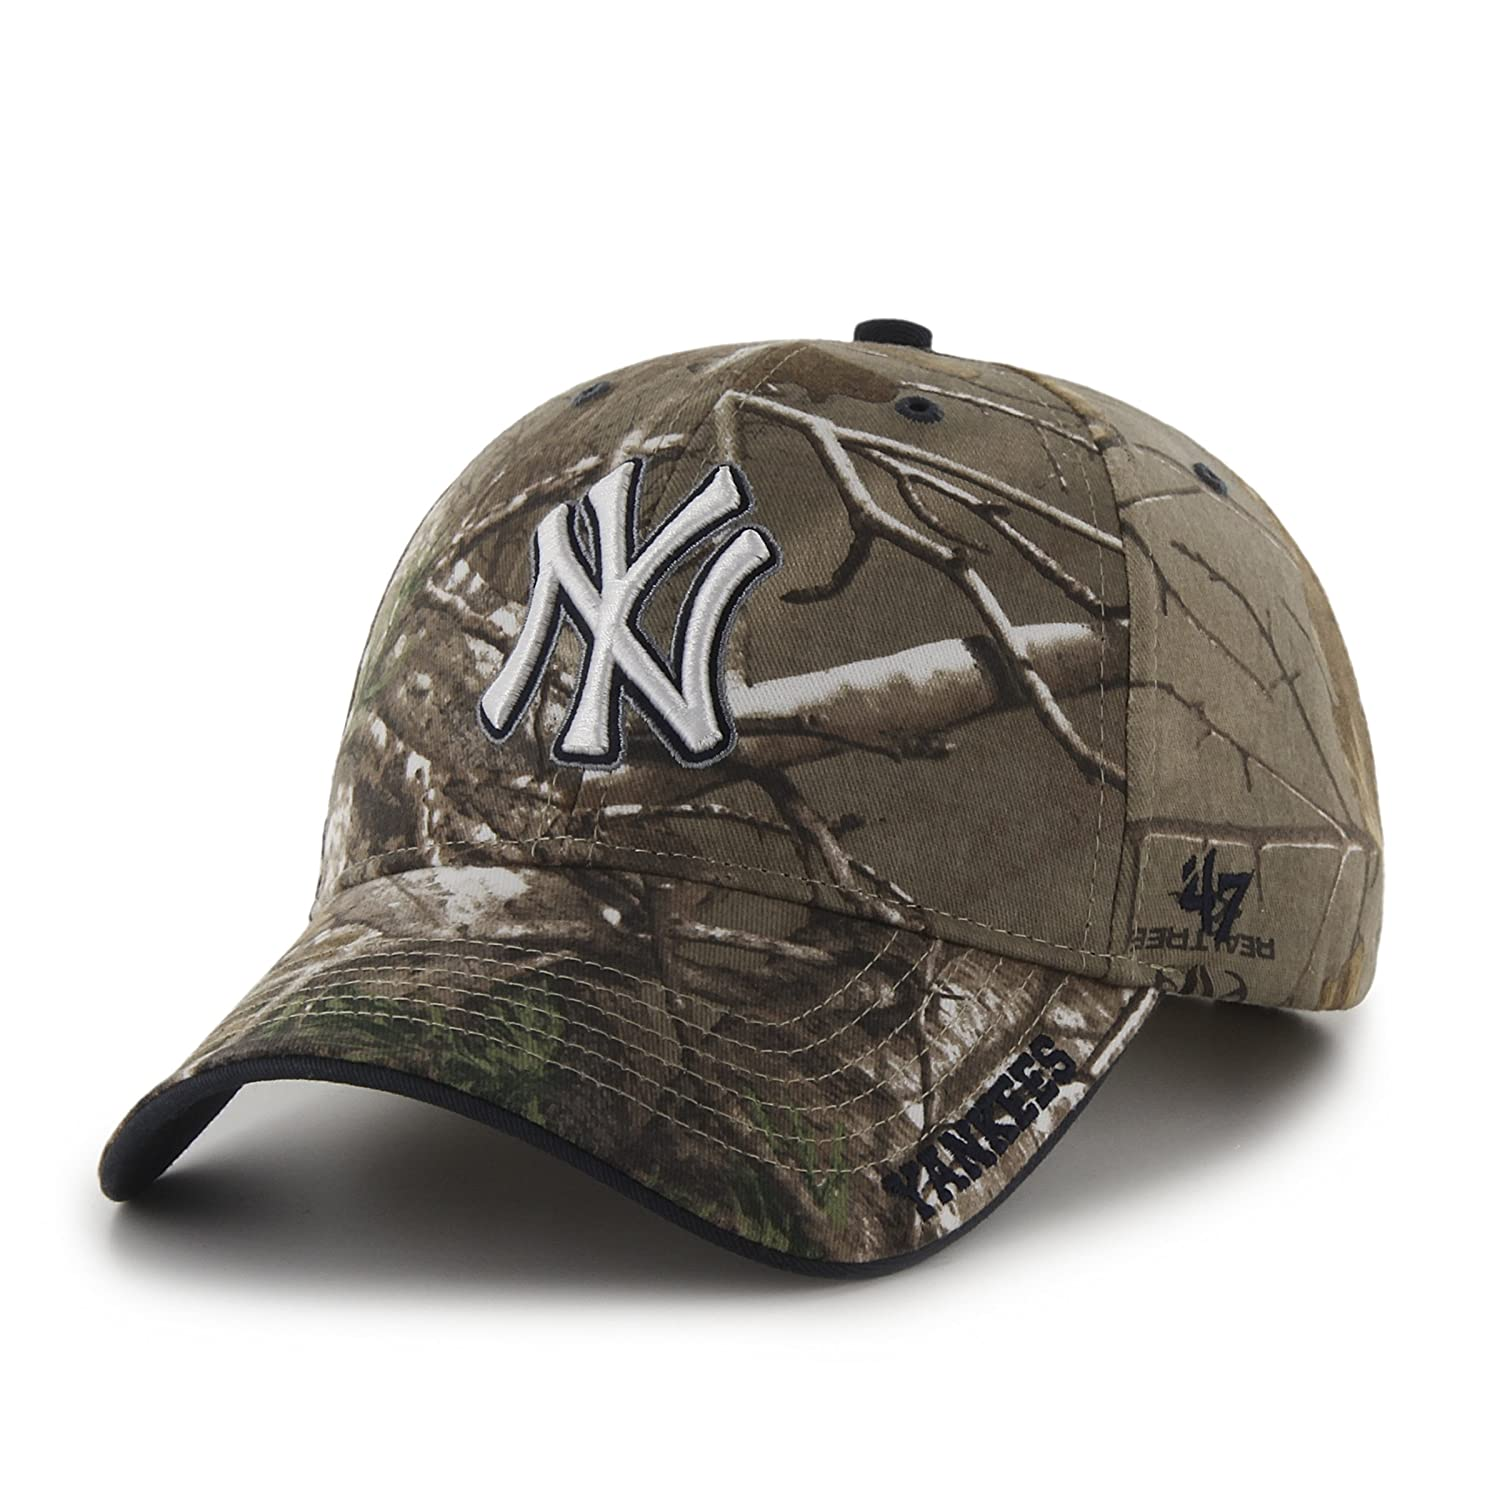 da59e56bfd959 ... best amazon mlb atlanta braves 47 frost mvp camo adjustable hat one  size fits most realtree ...